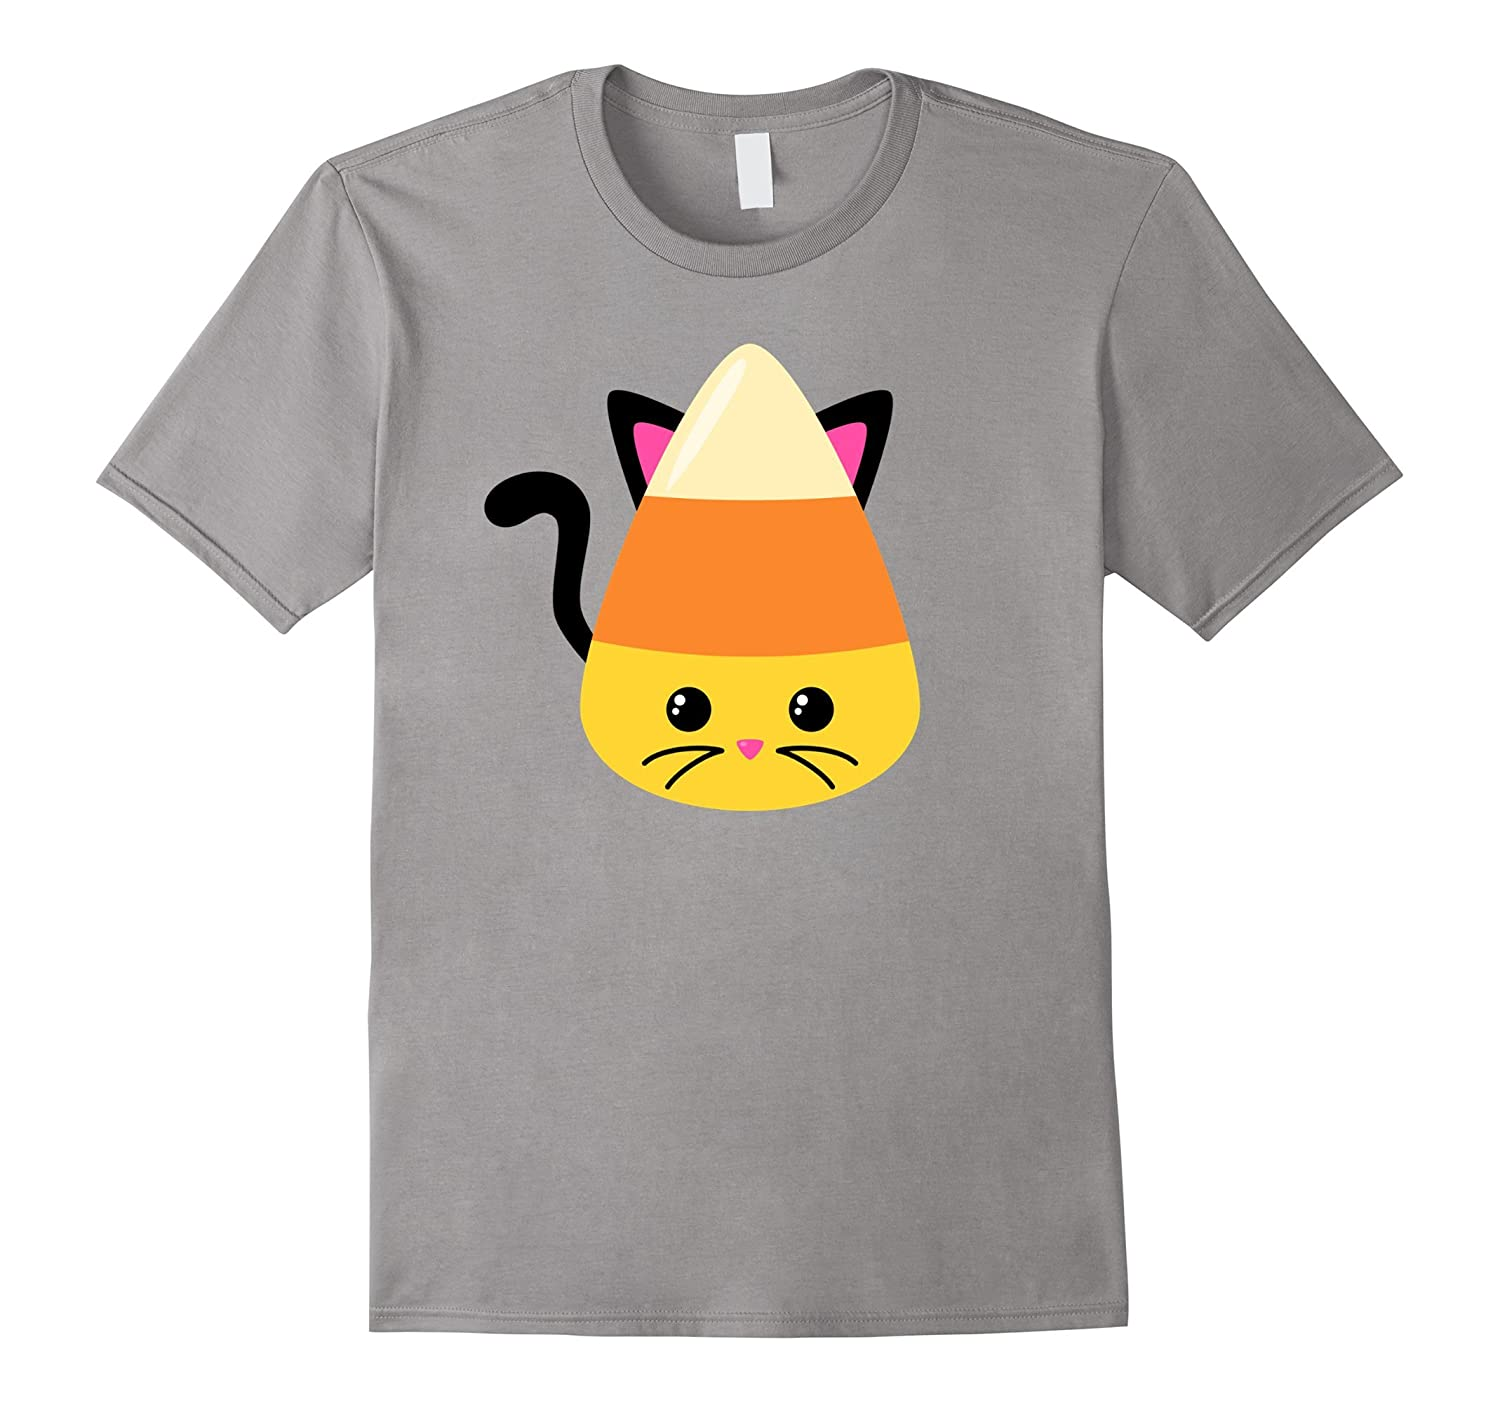 Candy Corn Emoji Cat Shirt